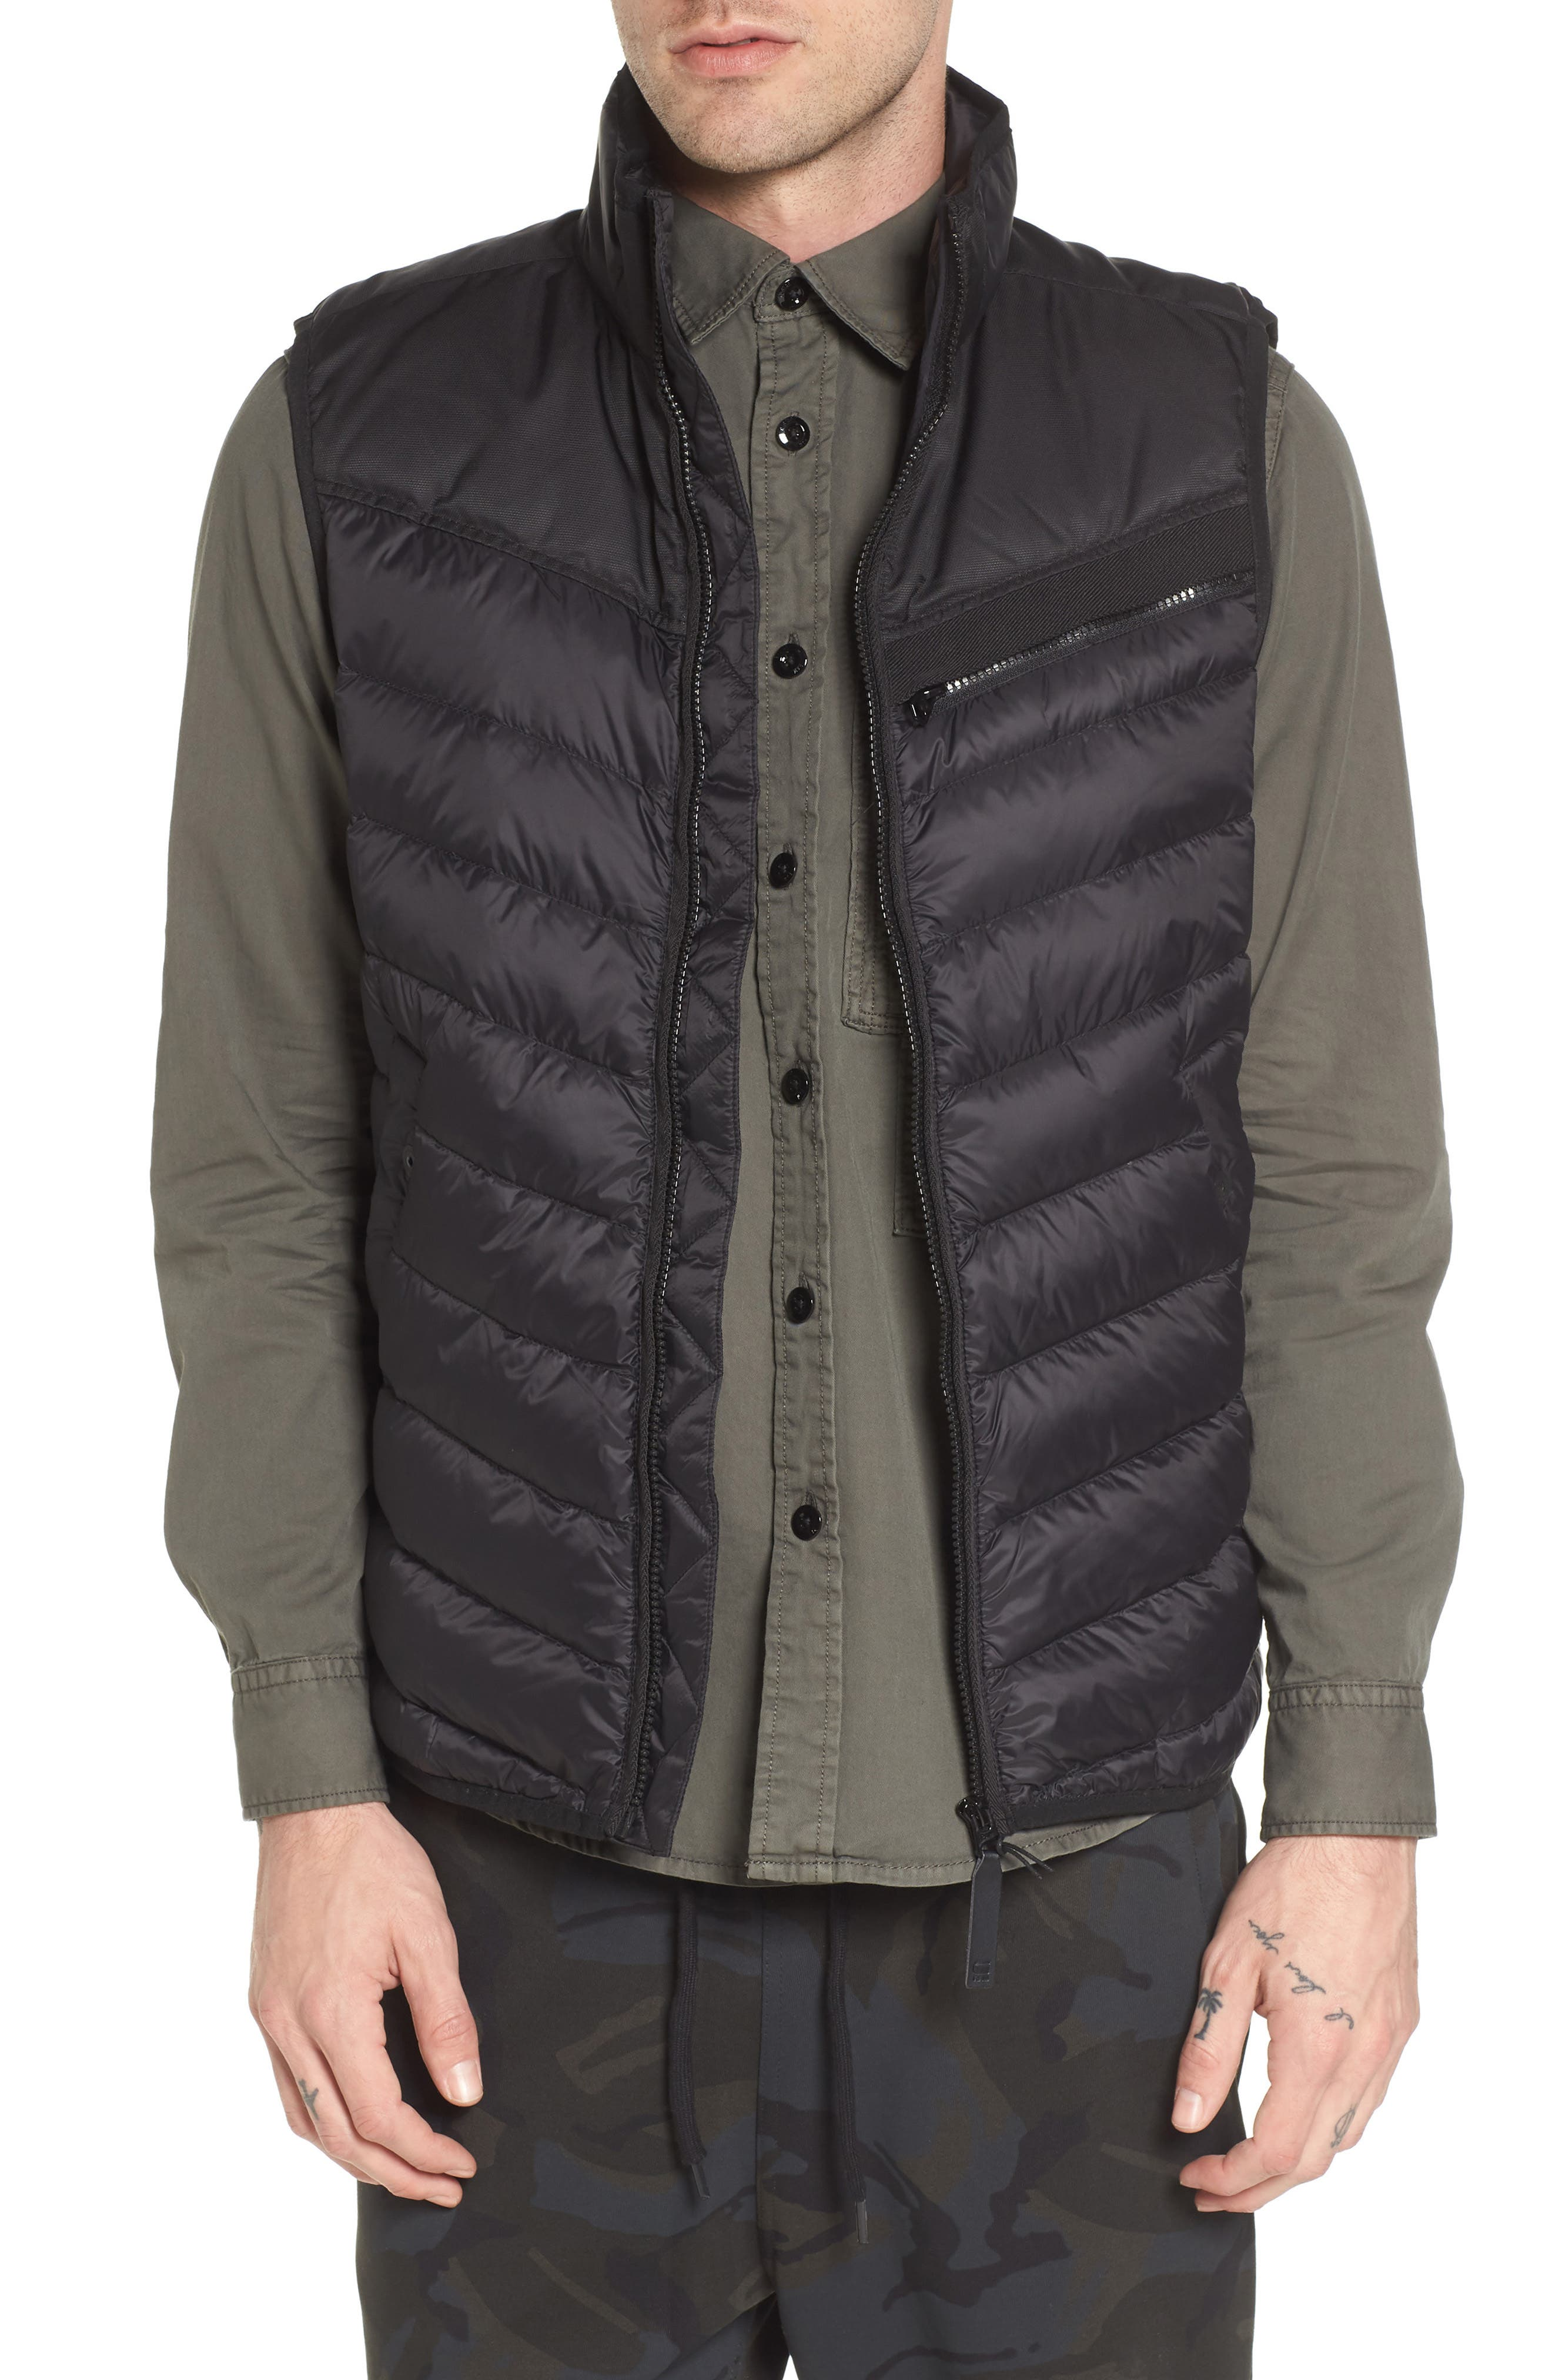 Attacc Down Vest,                         Main,                         color, Black